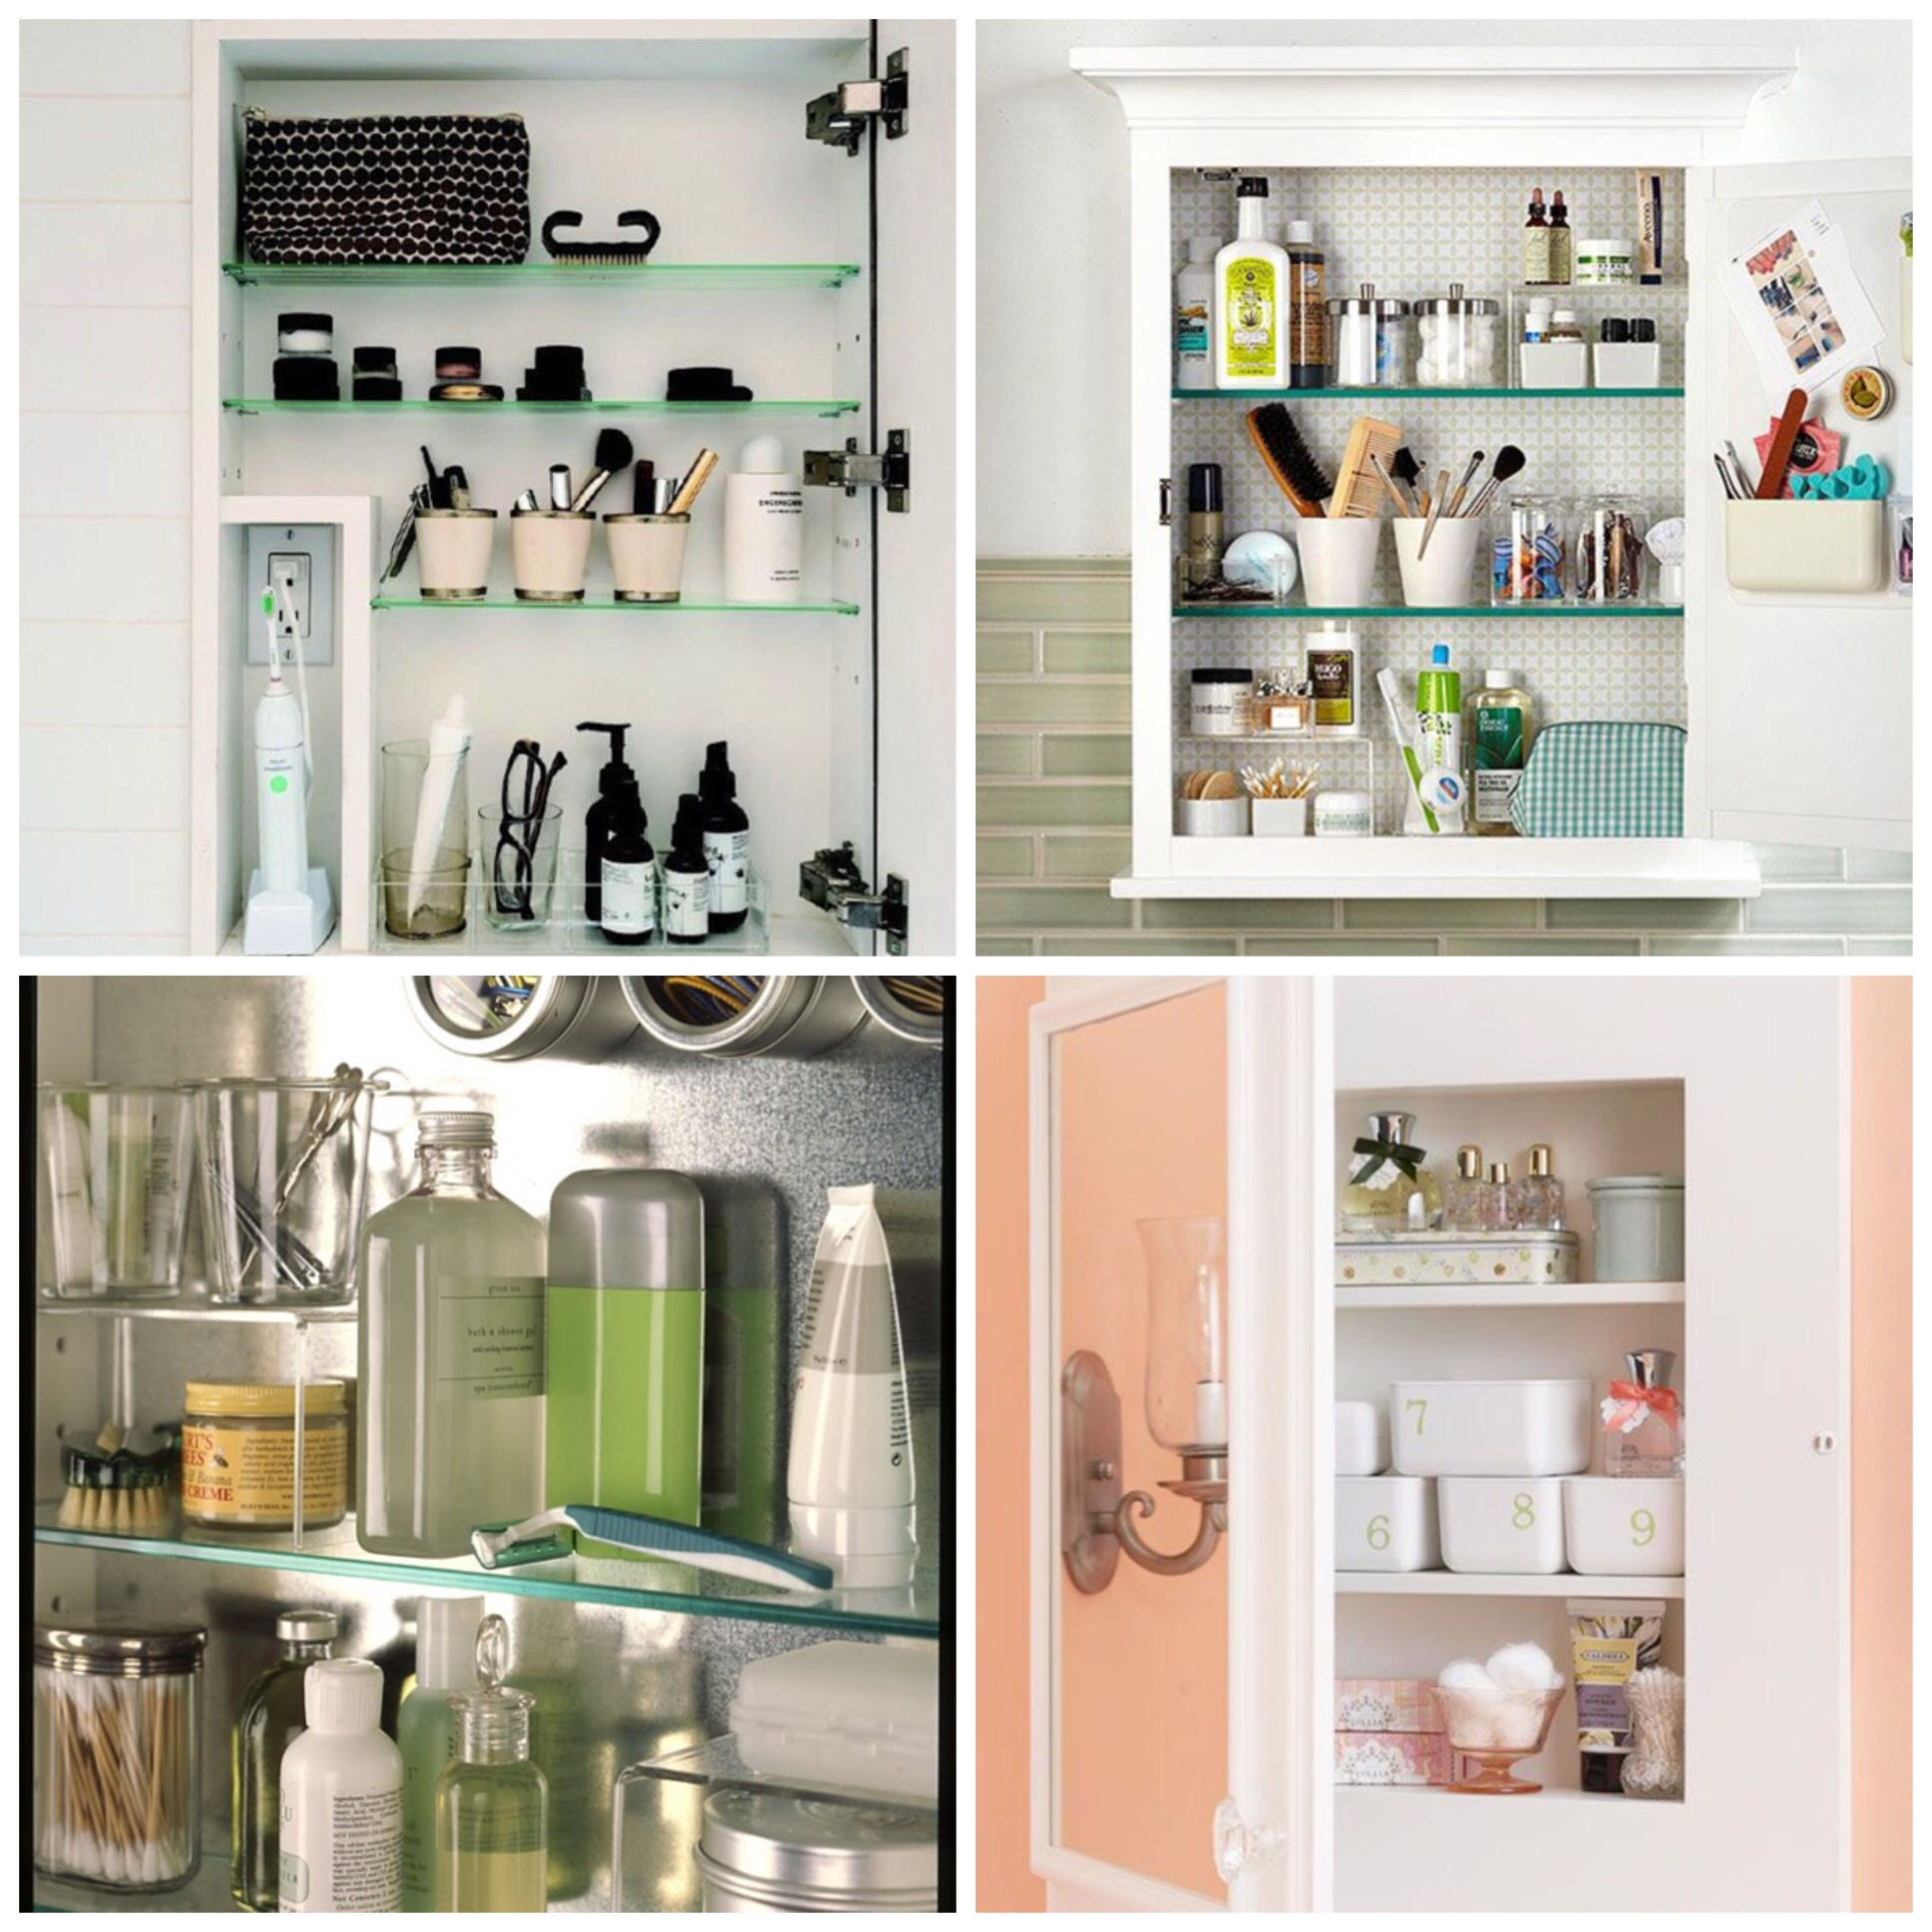 Source: image search on Pinterest for 'medicine cabinet'